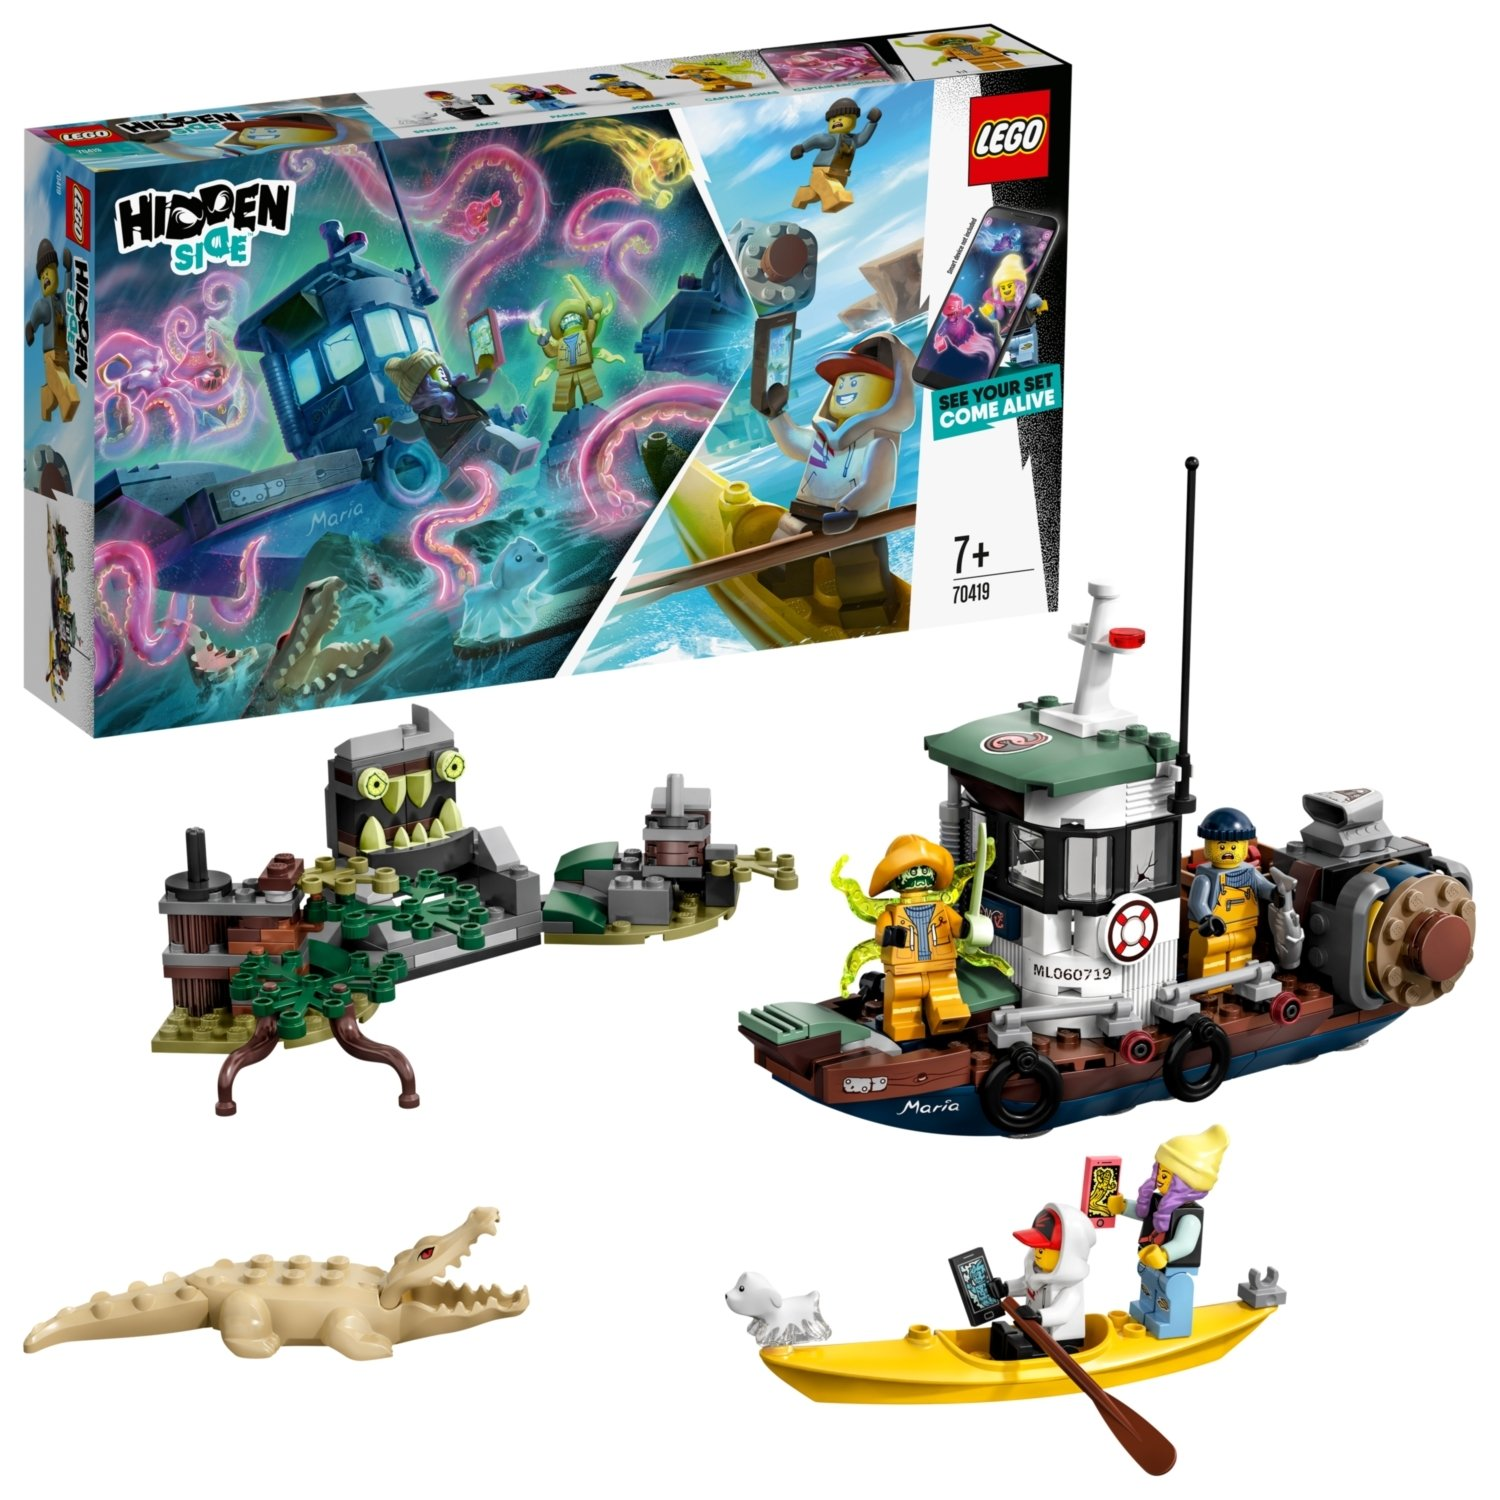 LEGO Hidden Side Wrecked Shrimp Boat - 70419